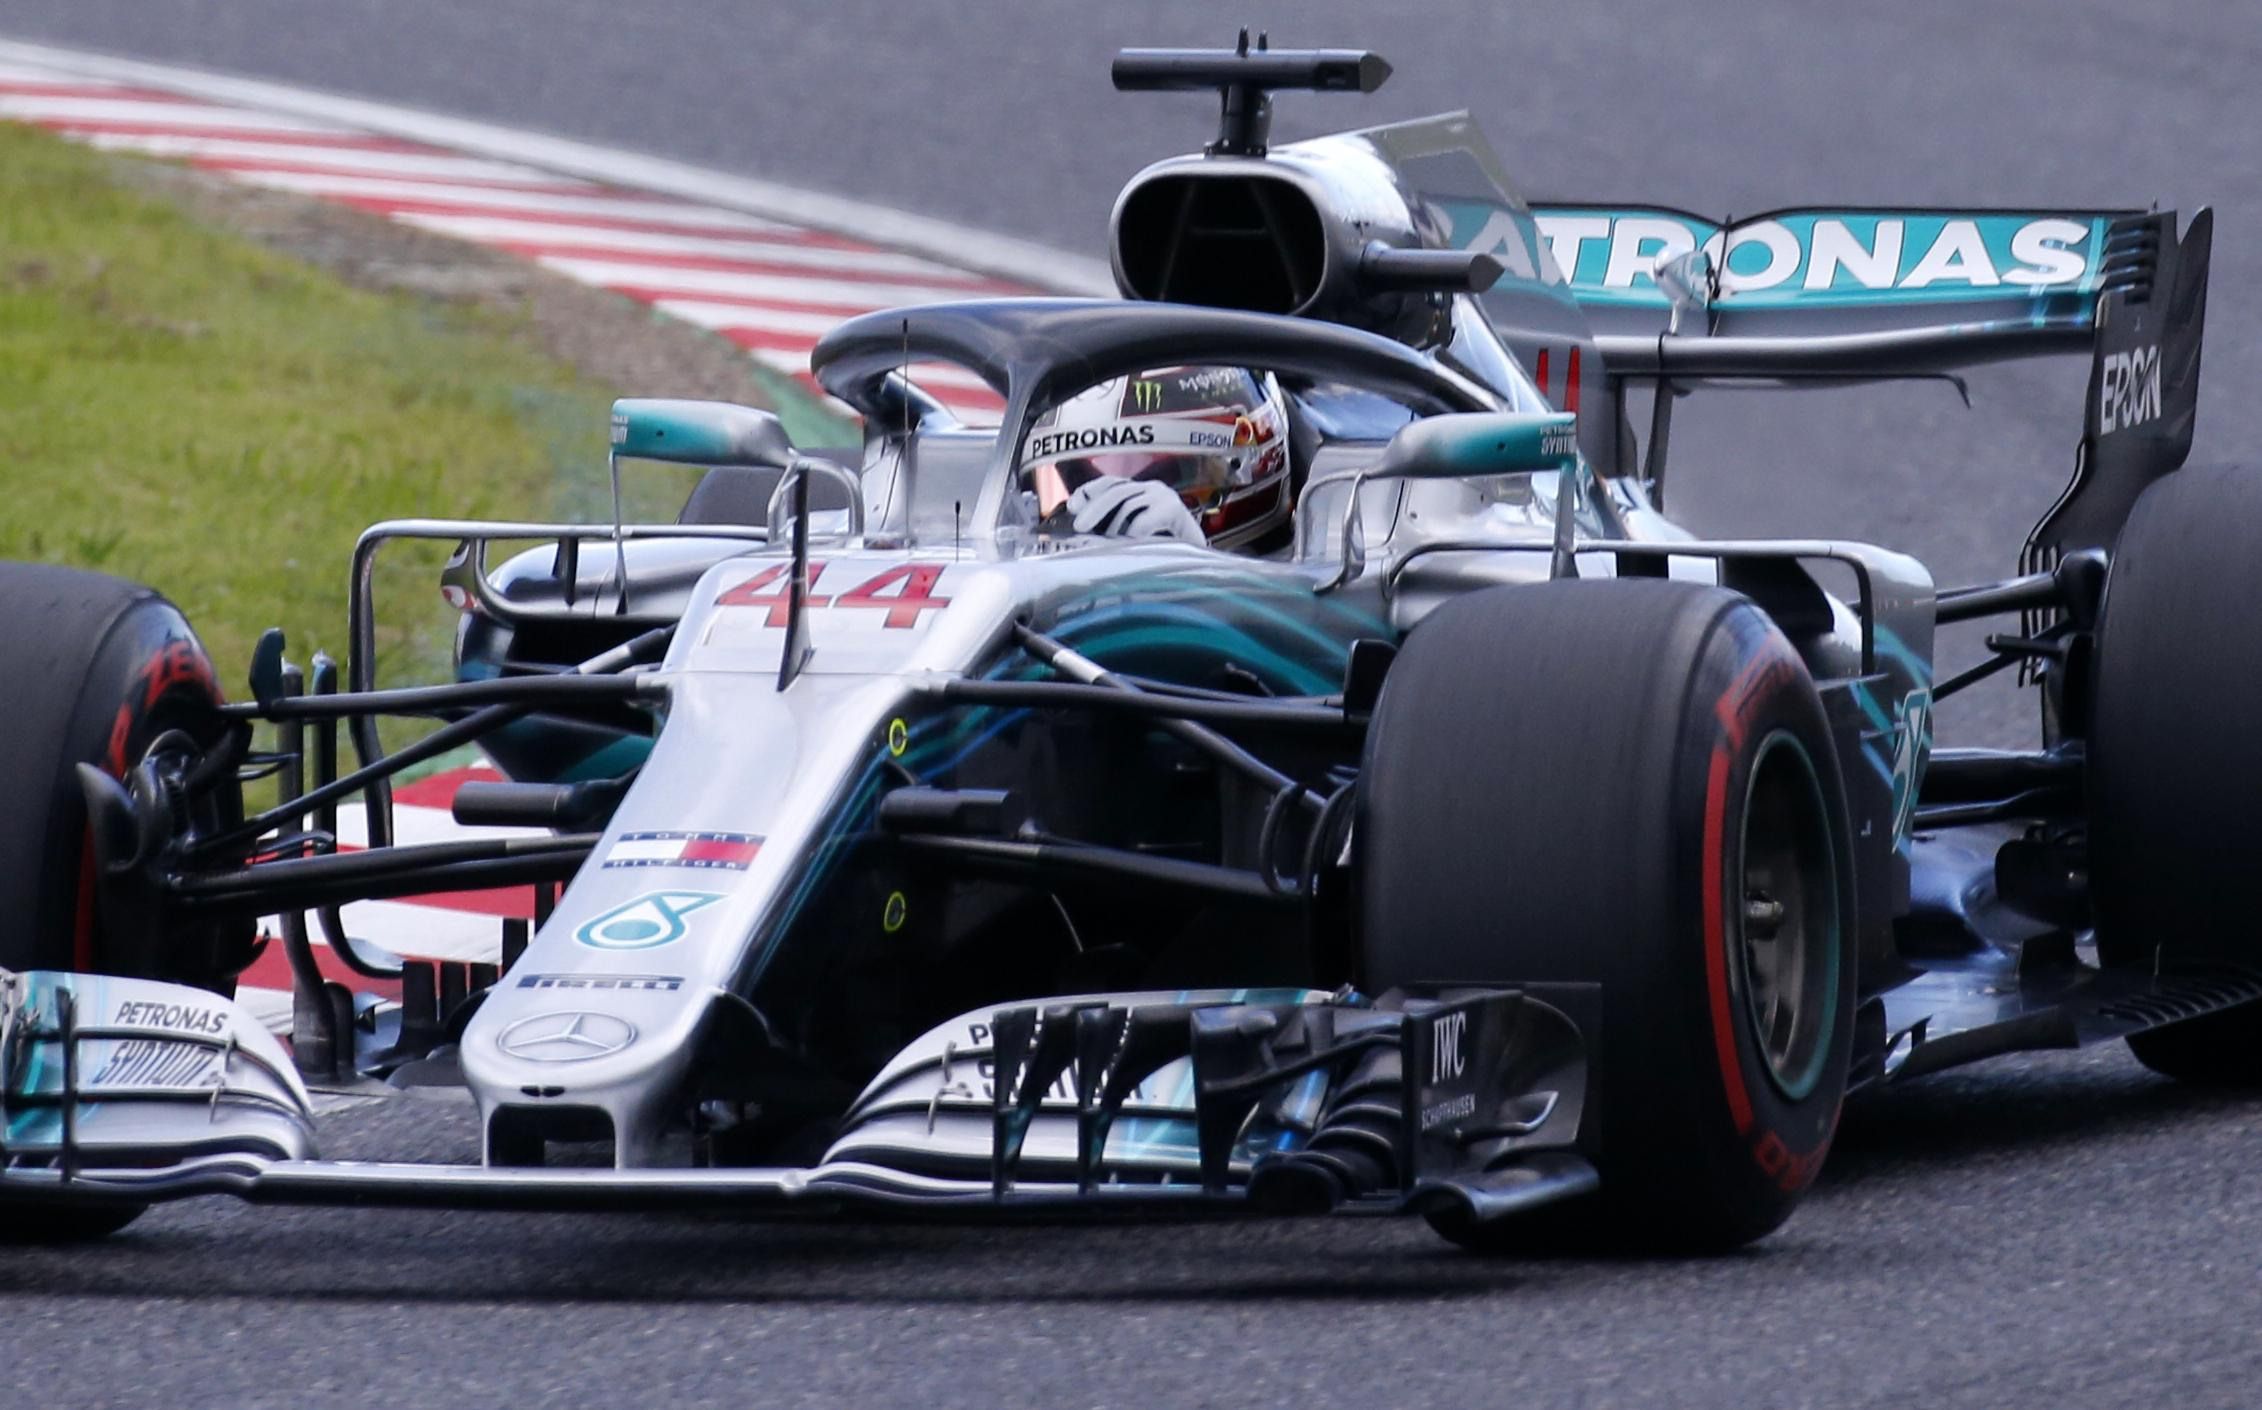 Pole position in Suzuka is Lewis Hamilton's 80th of his career